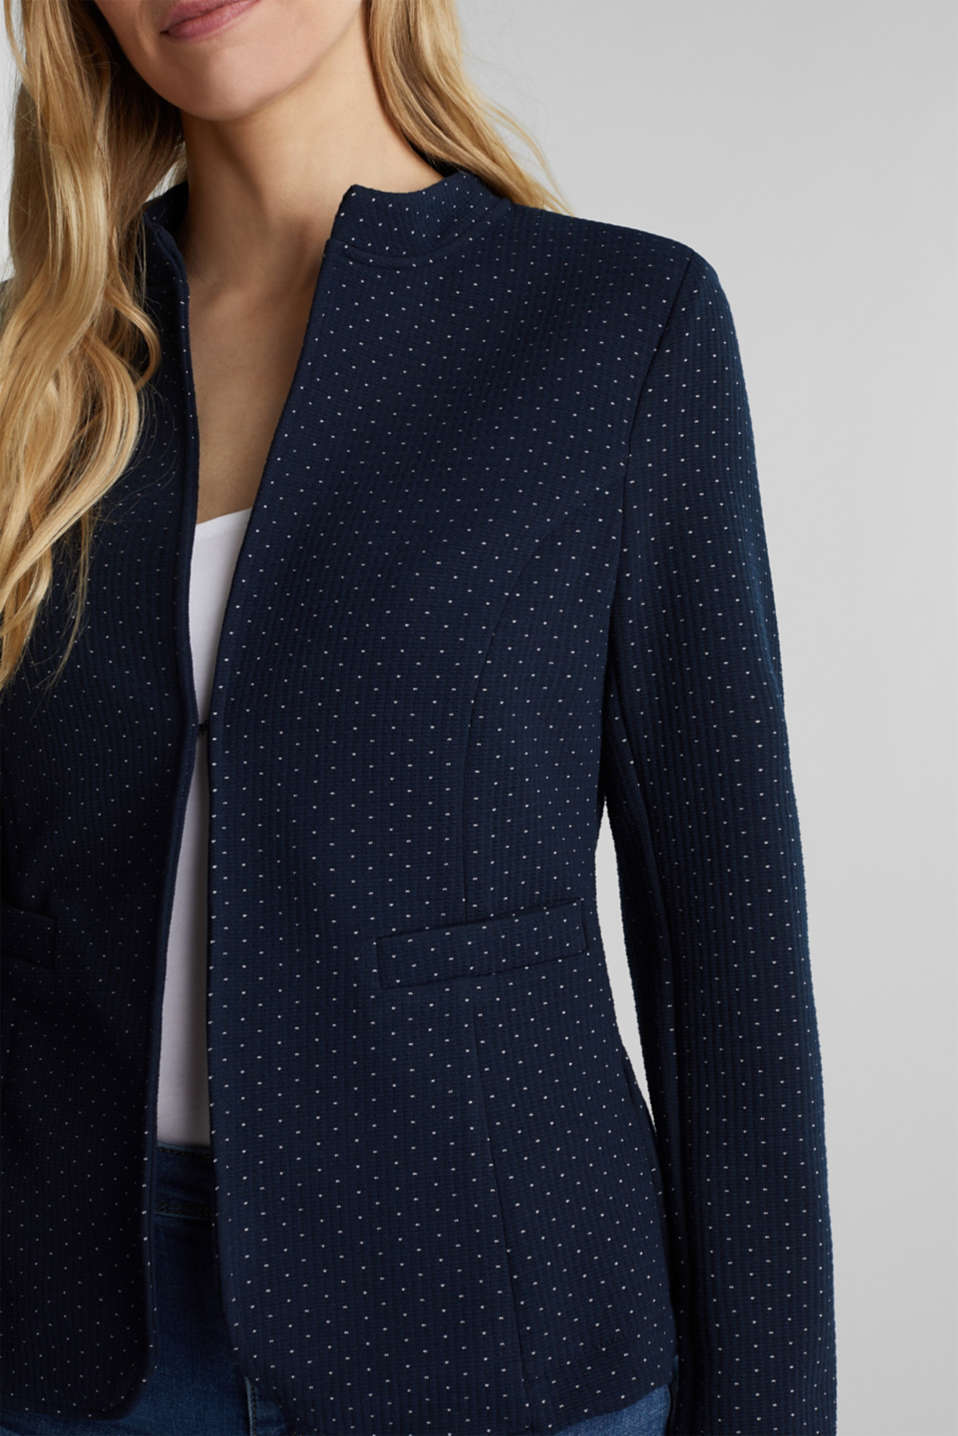 Jackets indoor knitted, NAVY, detail image number 2